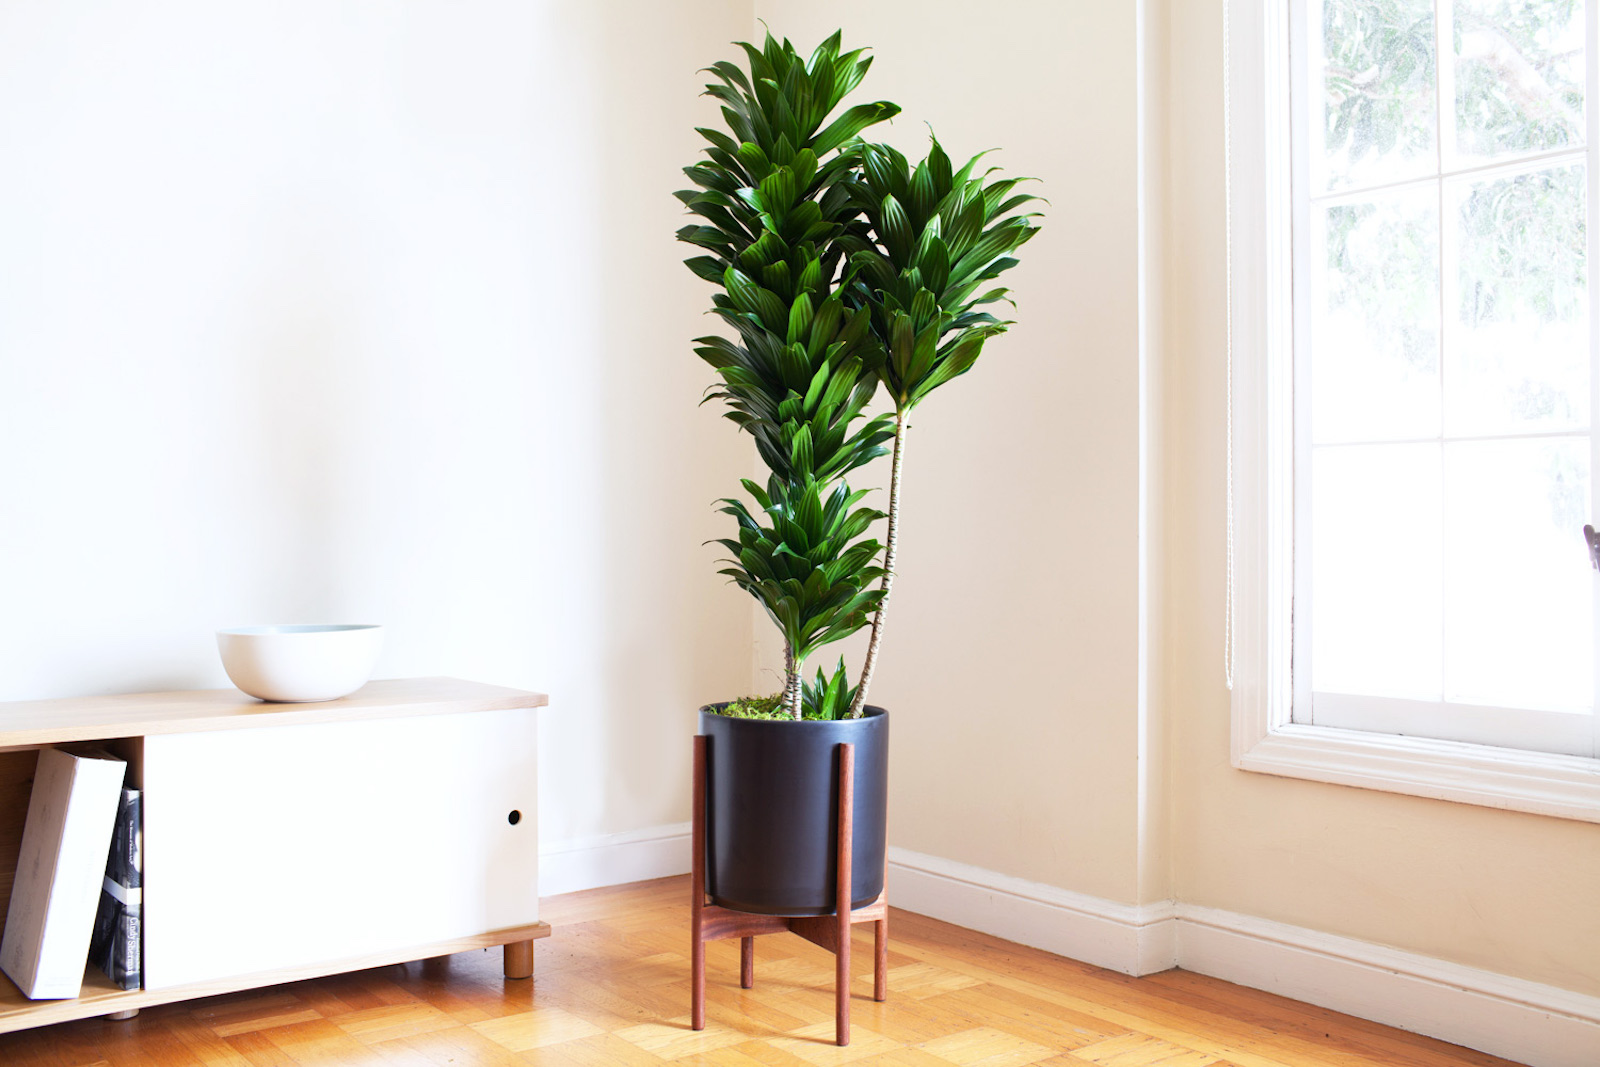 The Dracena Compacta is a beautiful plant for the office as it inspires creativity and cleans the air.